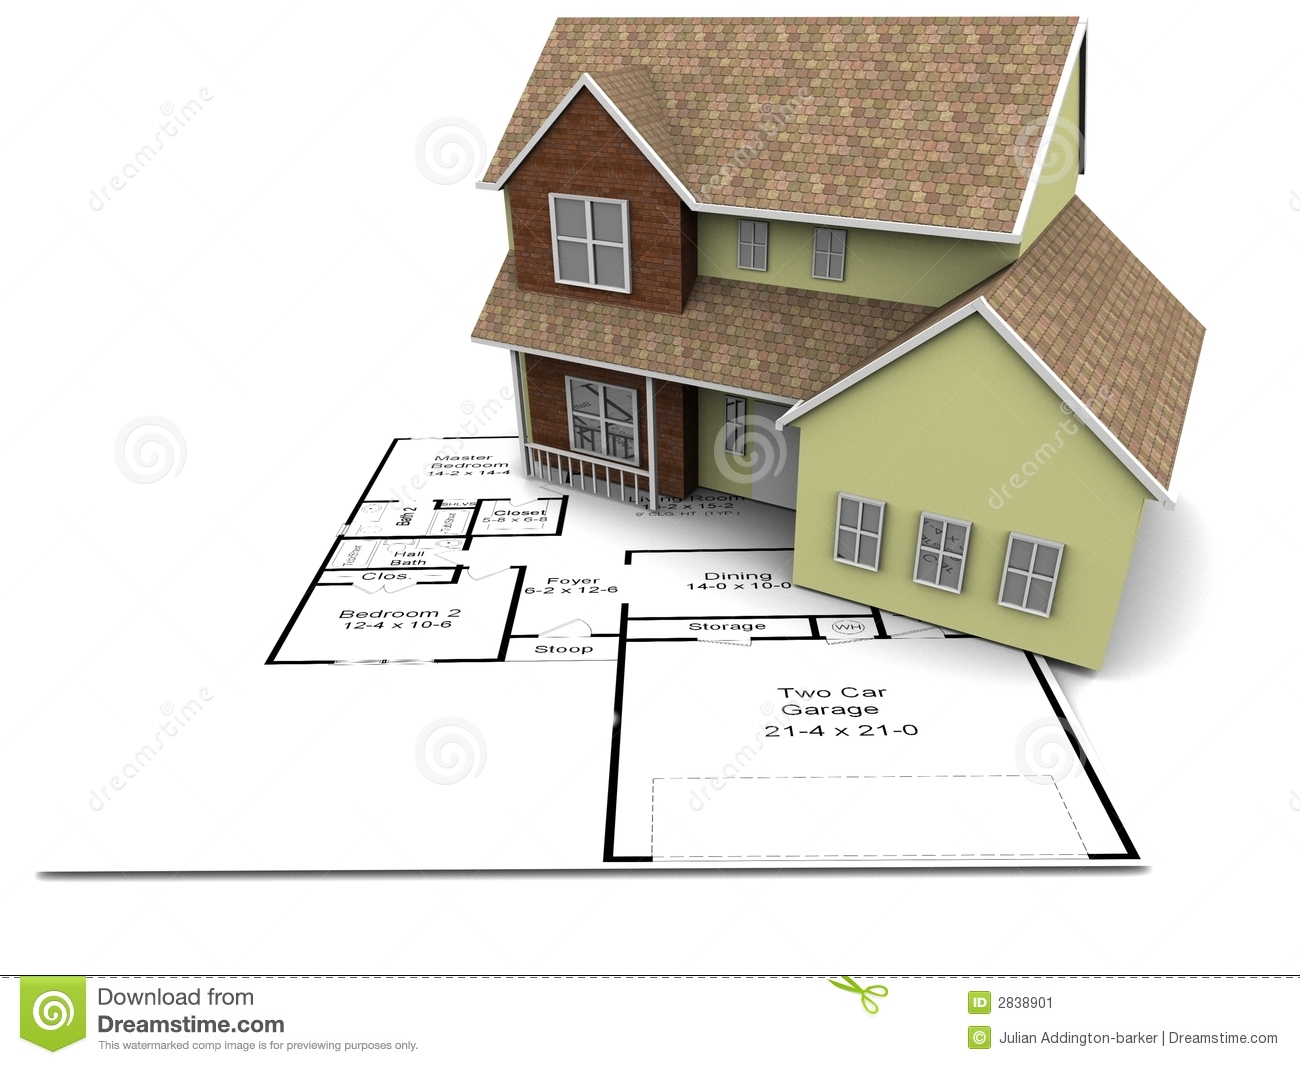 New house plans stock illustration illustration of house for Stock house plans